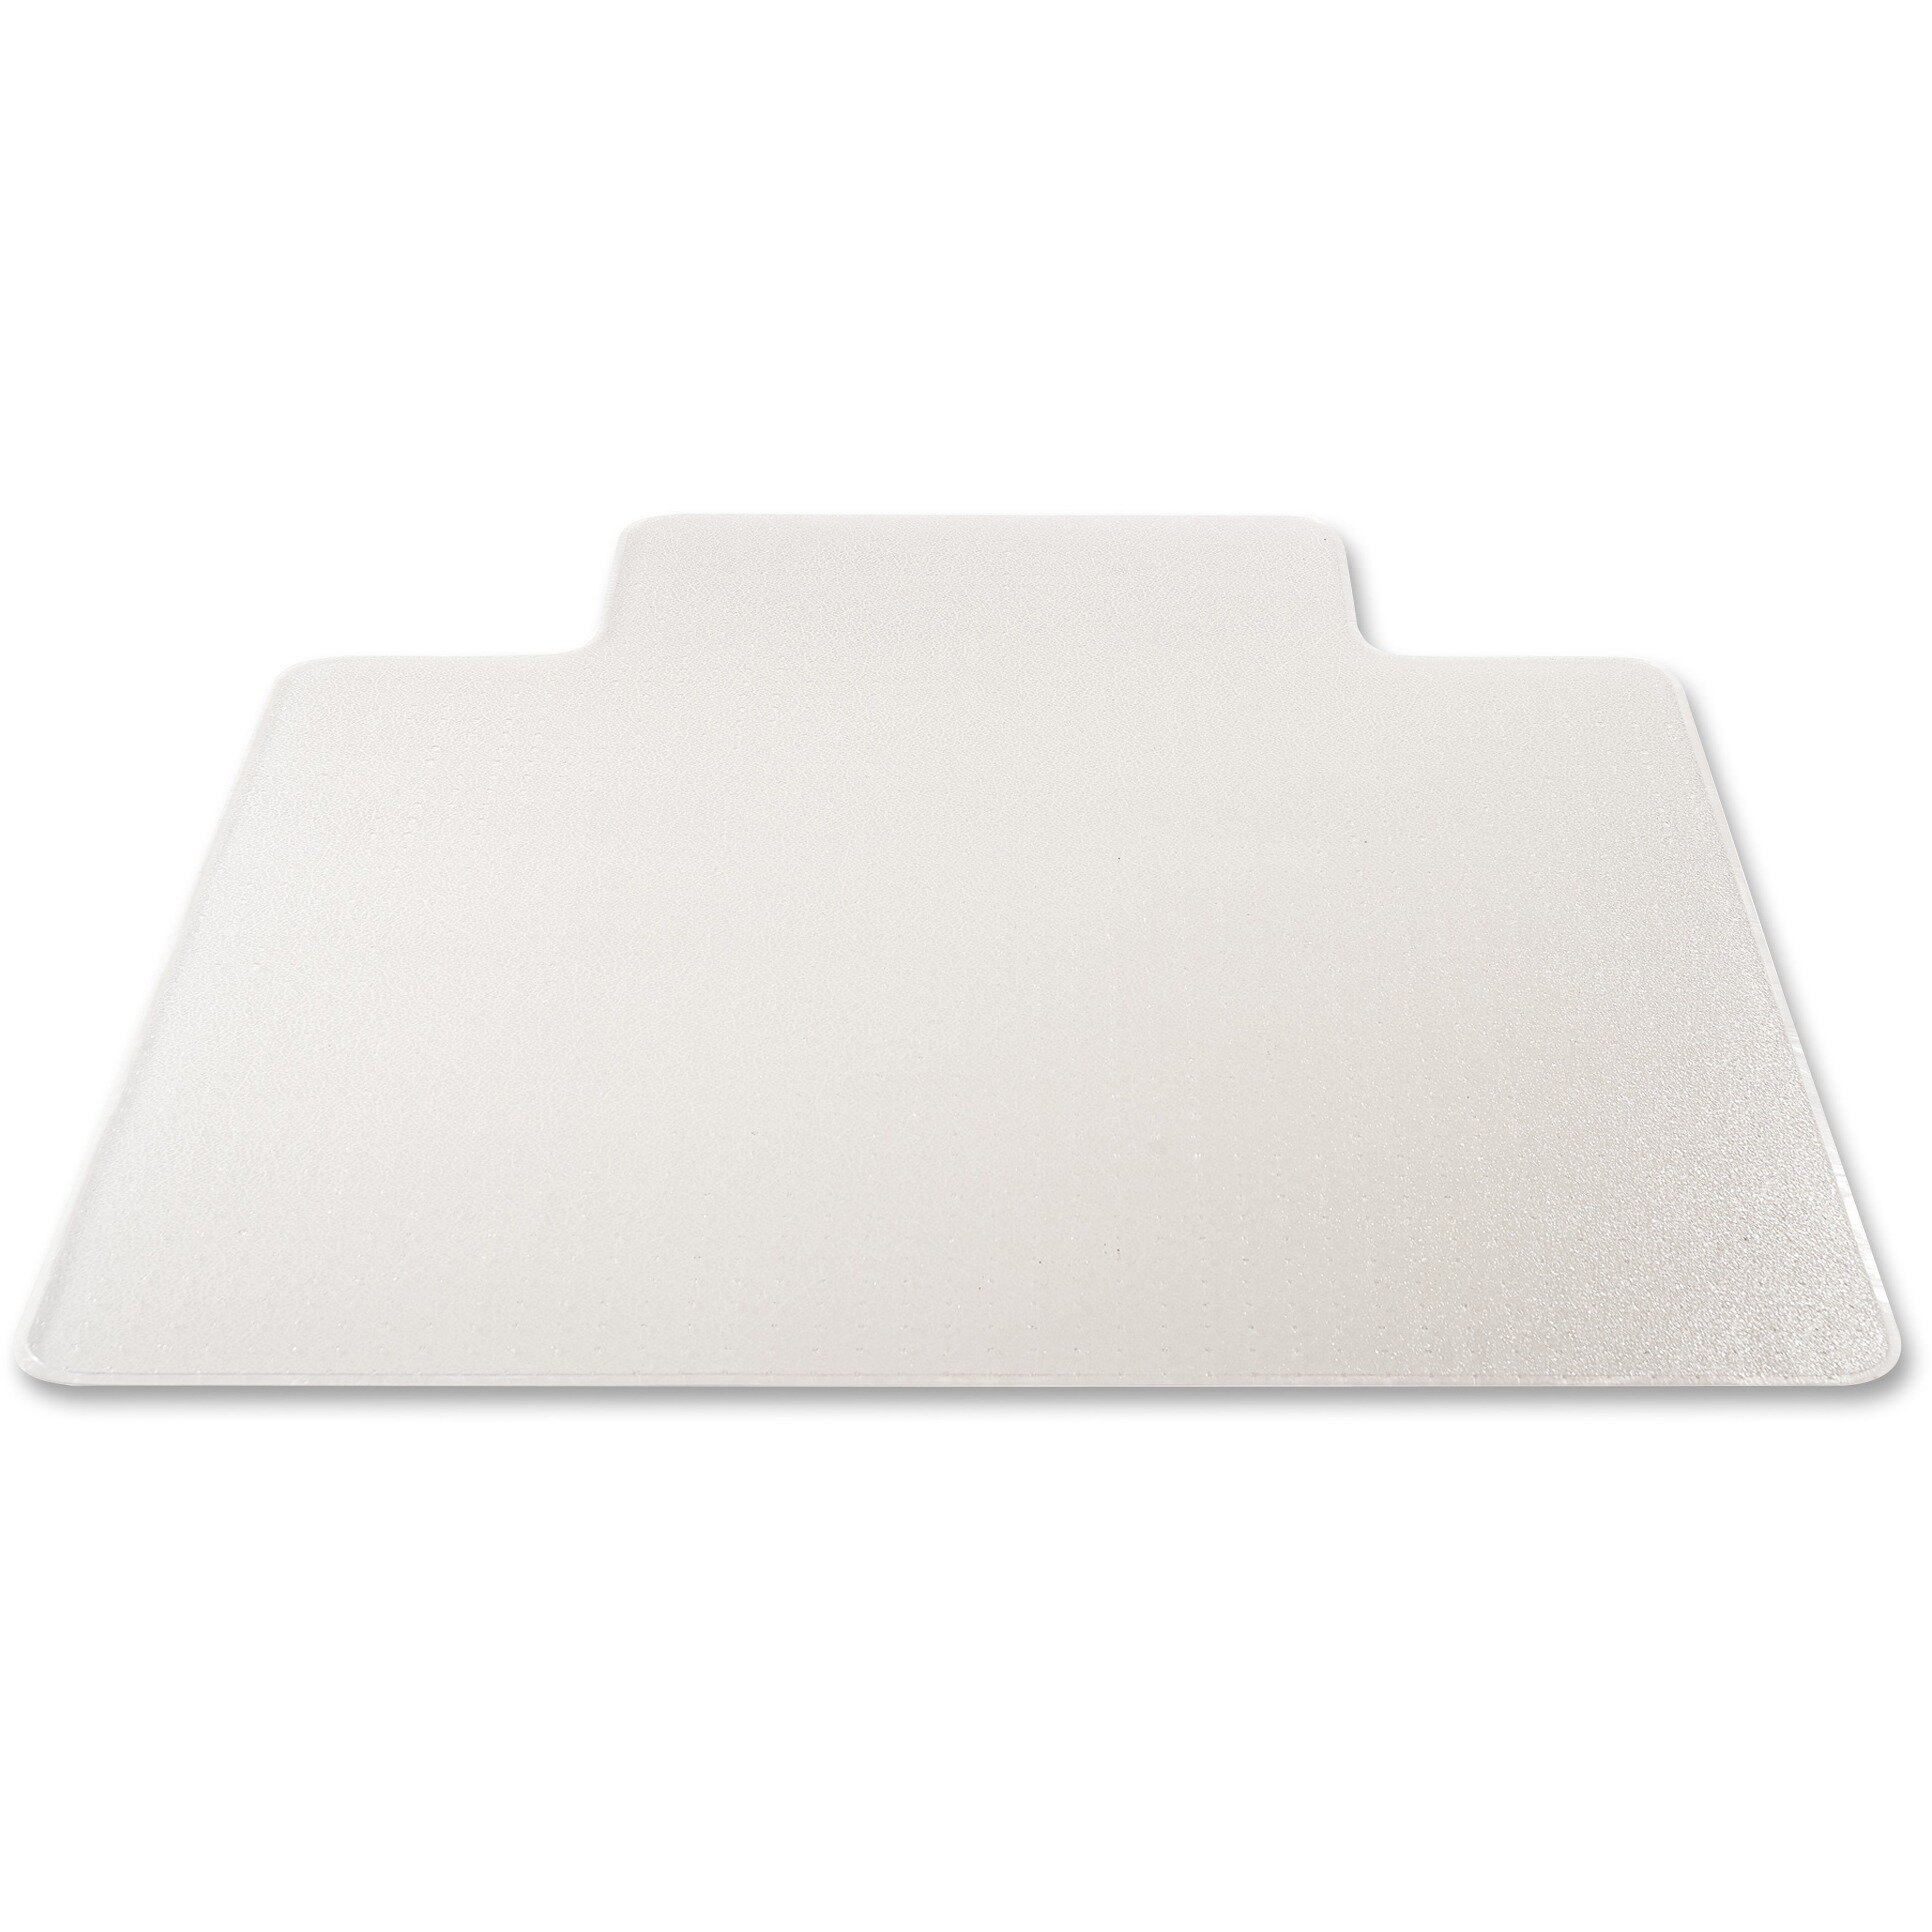 Furniture Office Furniture Chair Mats Deflecto SKU FC2329